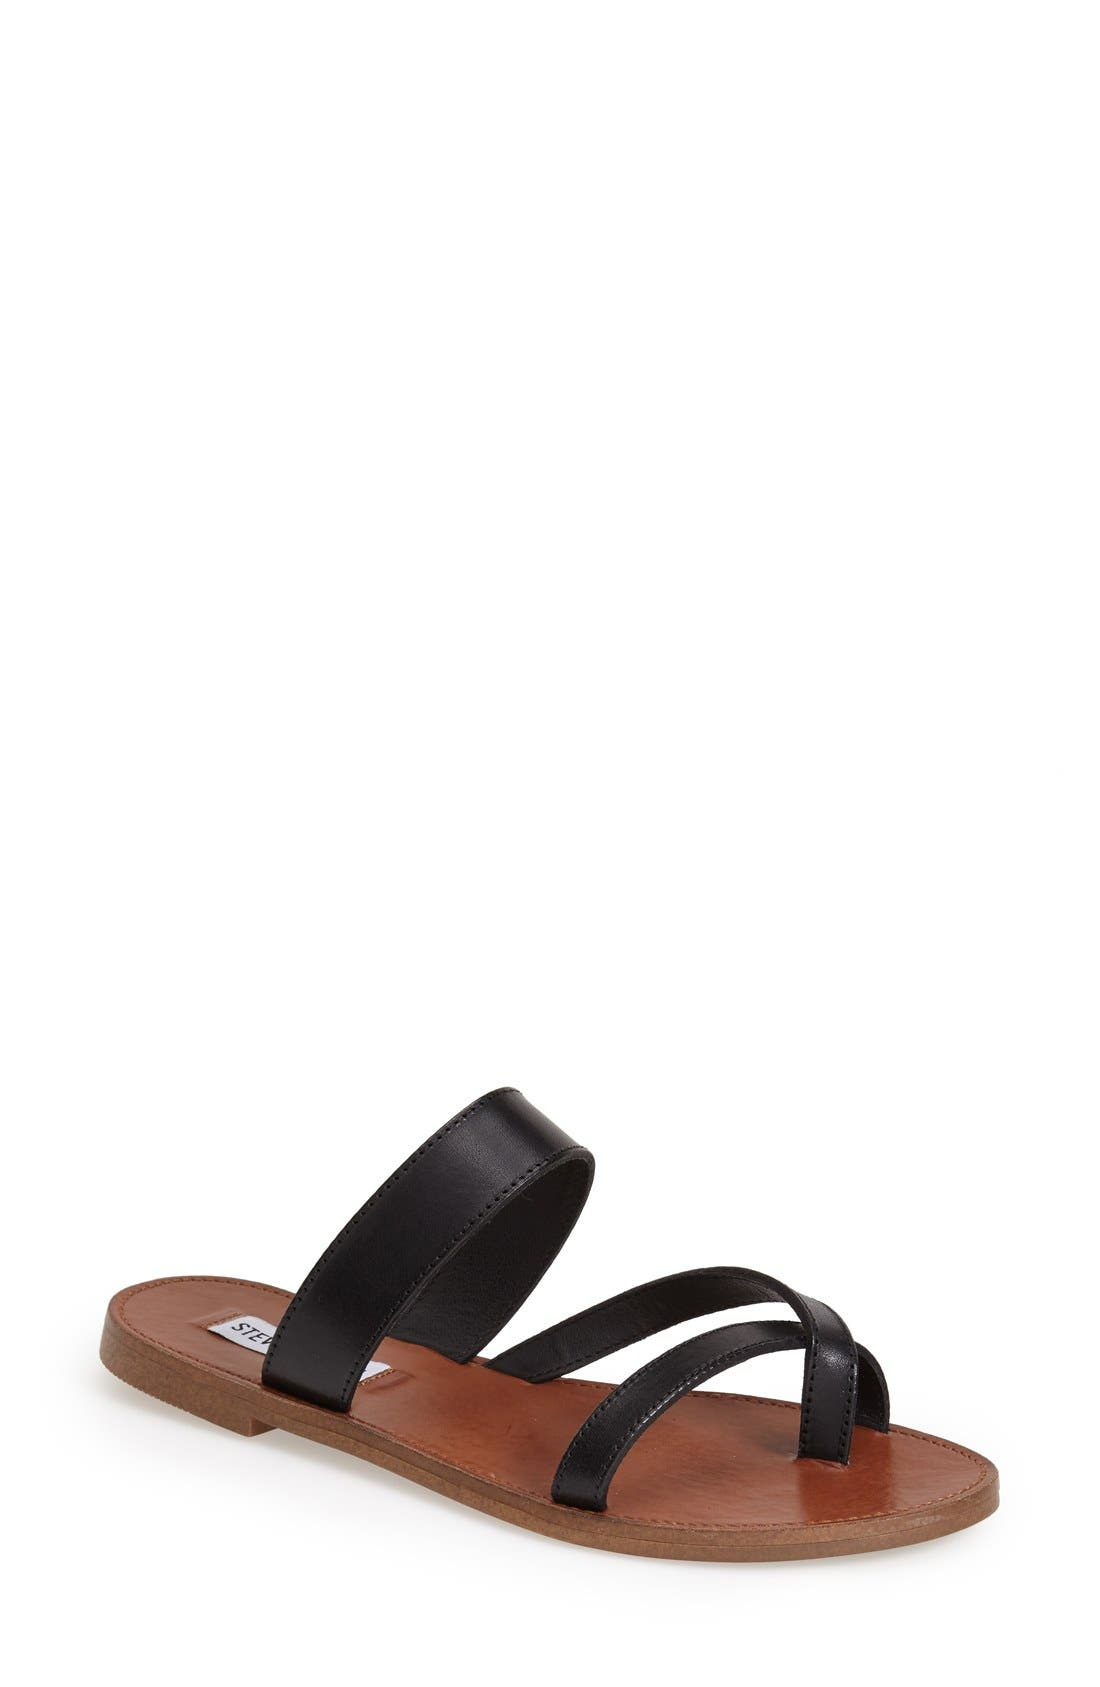 Alternate Image 1 Selected - Steve Madden 'Aintso' Strappy Leather Toe Ring Sandal (Women)